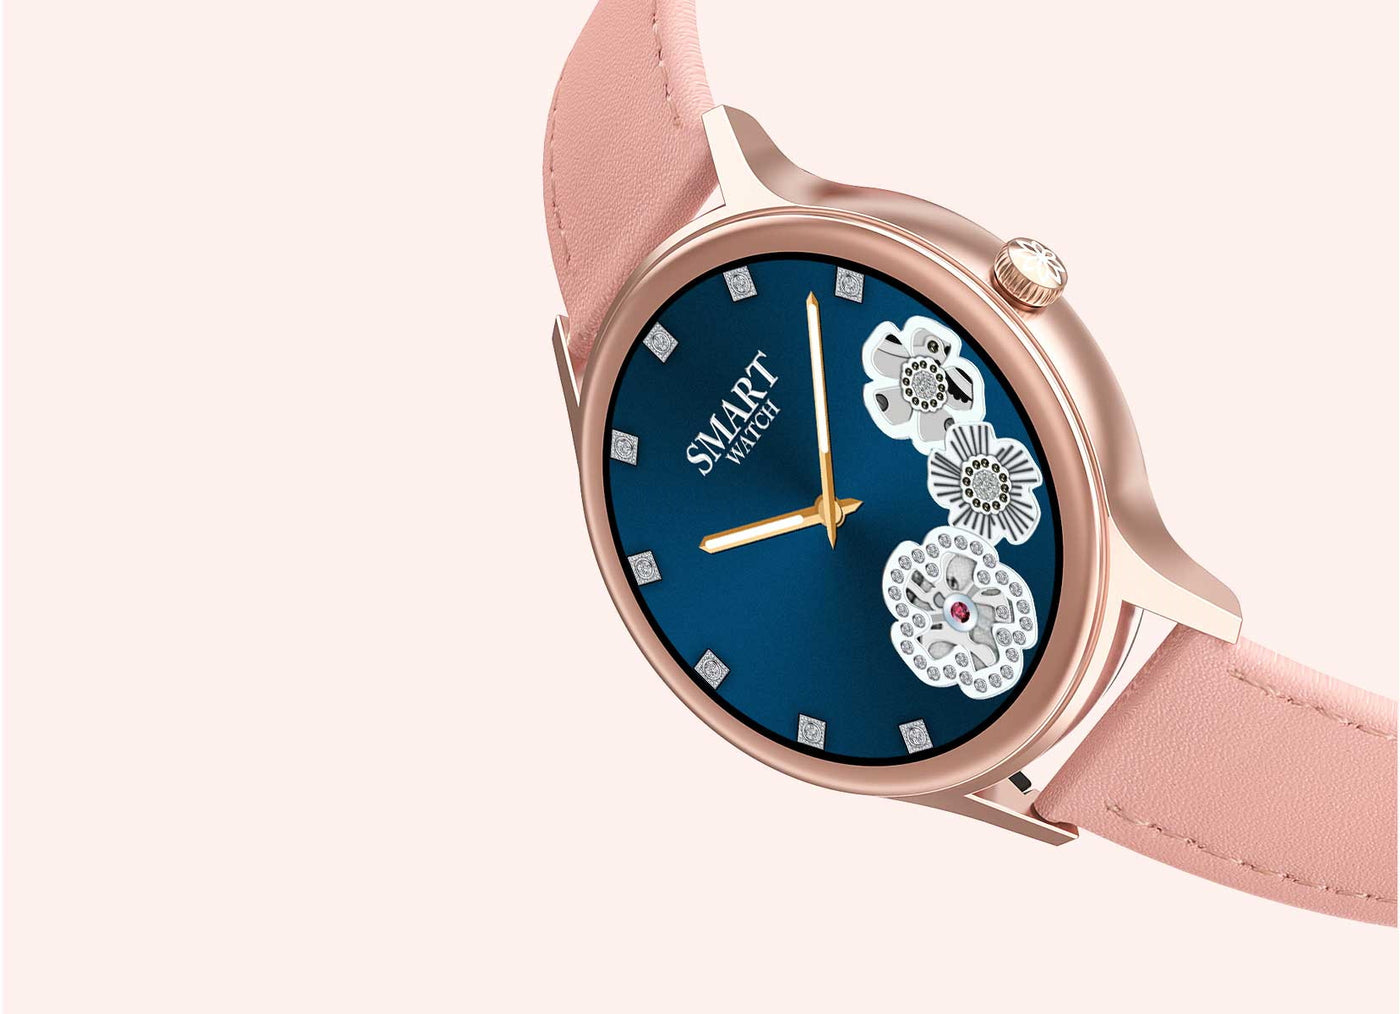 Neuclo Watch Amour smartwatch- designed for women.